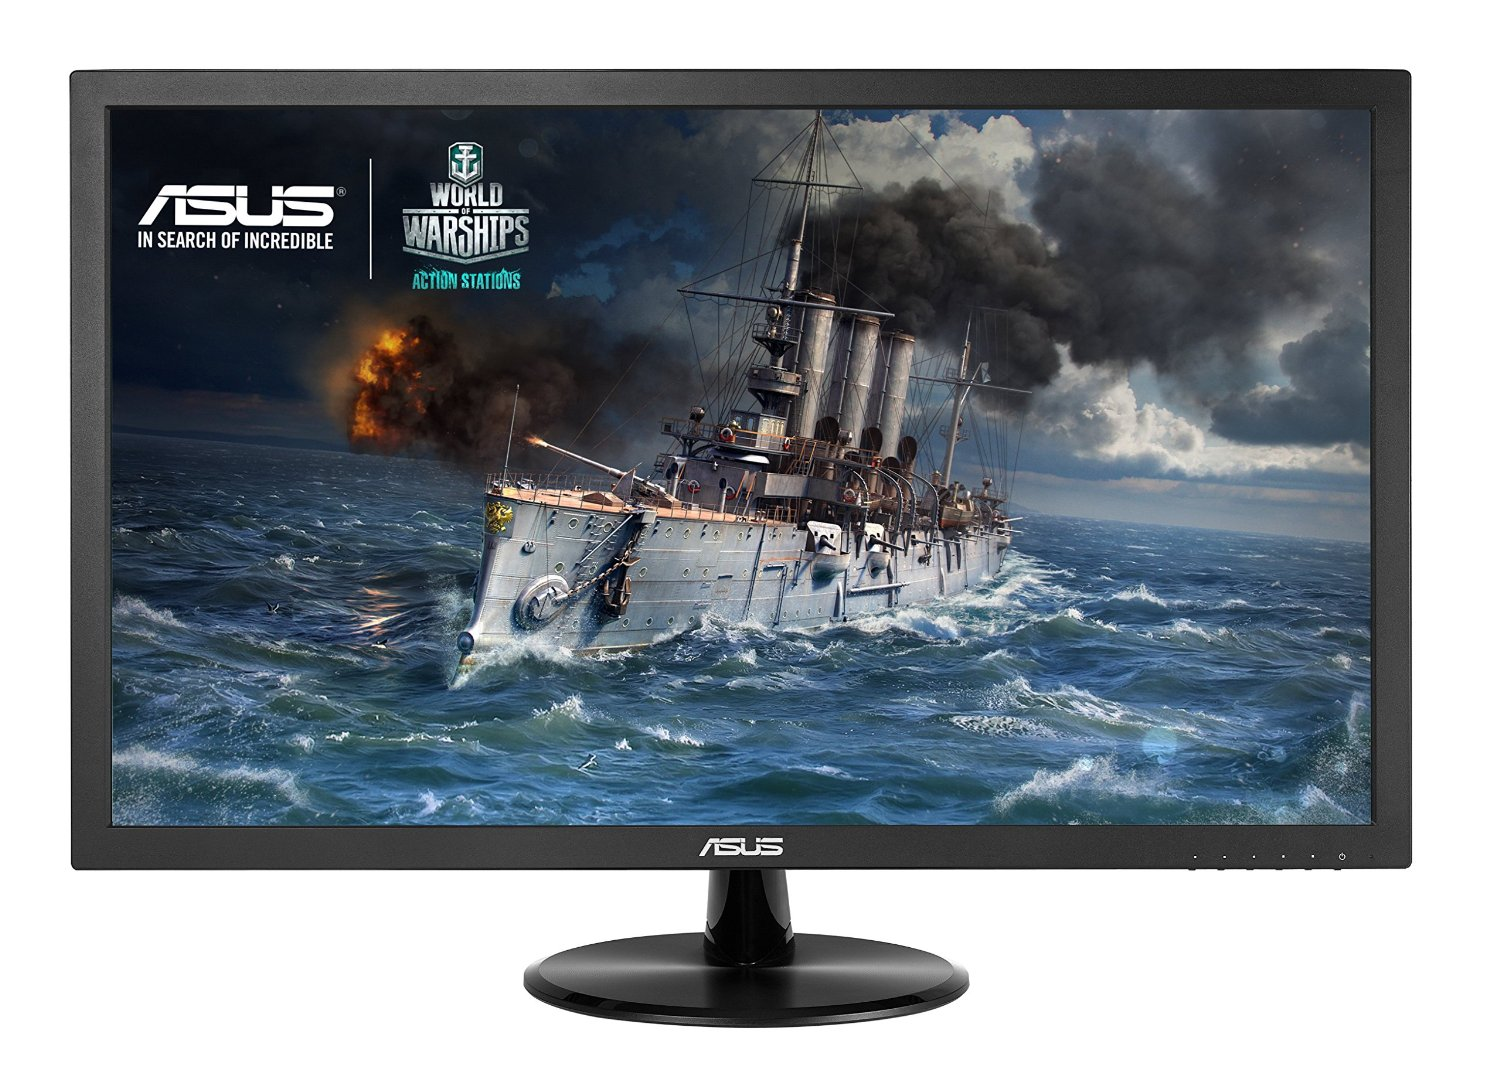 Asus VP247H-P 23.6 inch WideScreen 1ms 100,000,000:1 VGA//DVI//HDMI LED LCD,RETAIL